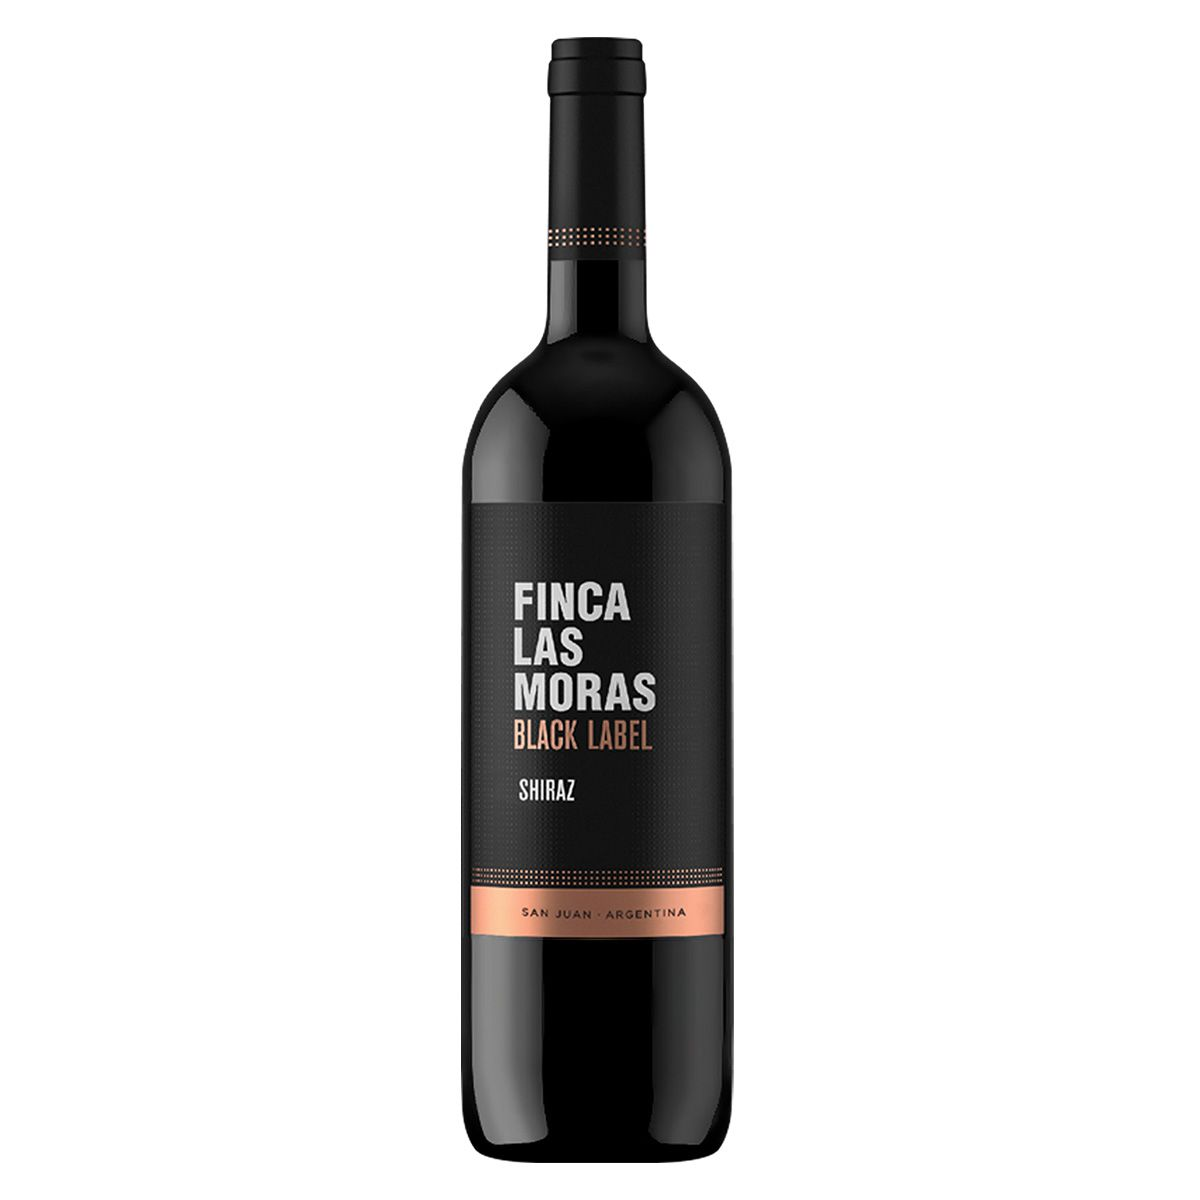 Las Moras Black Label Shiraz